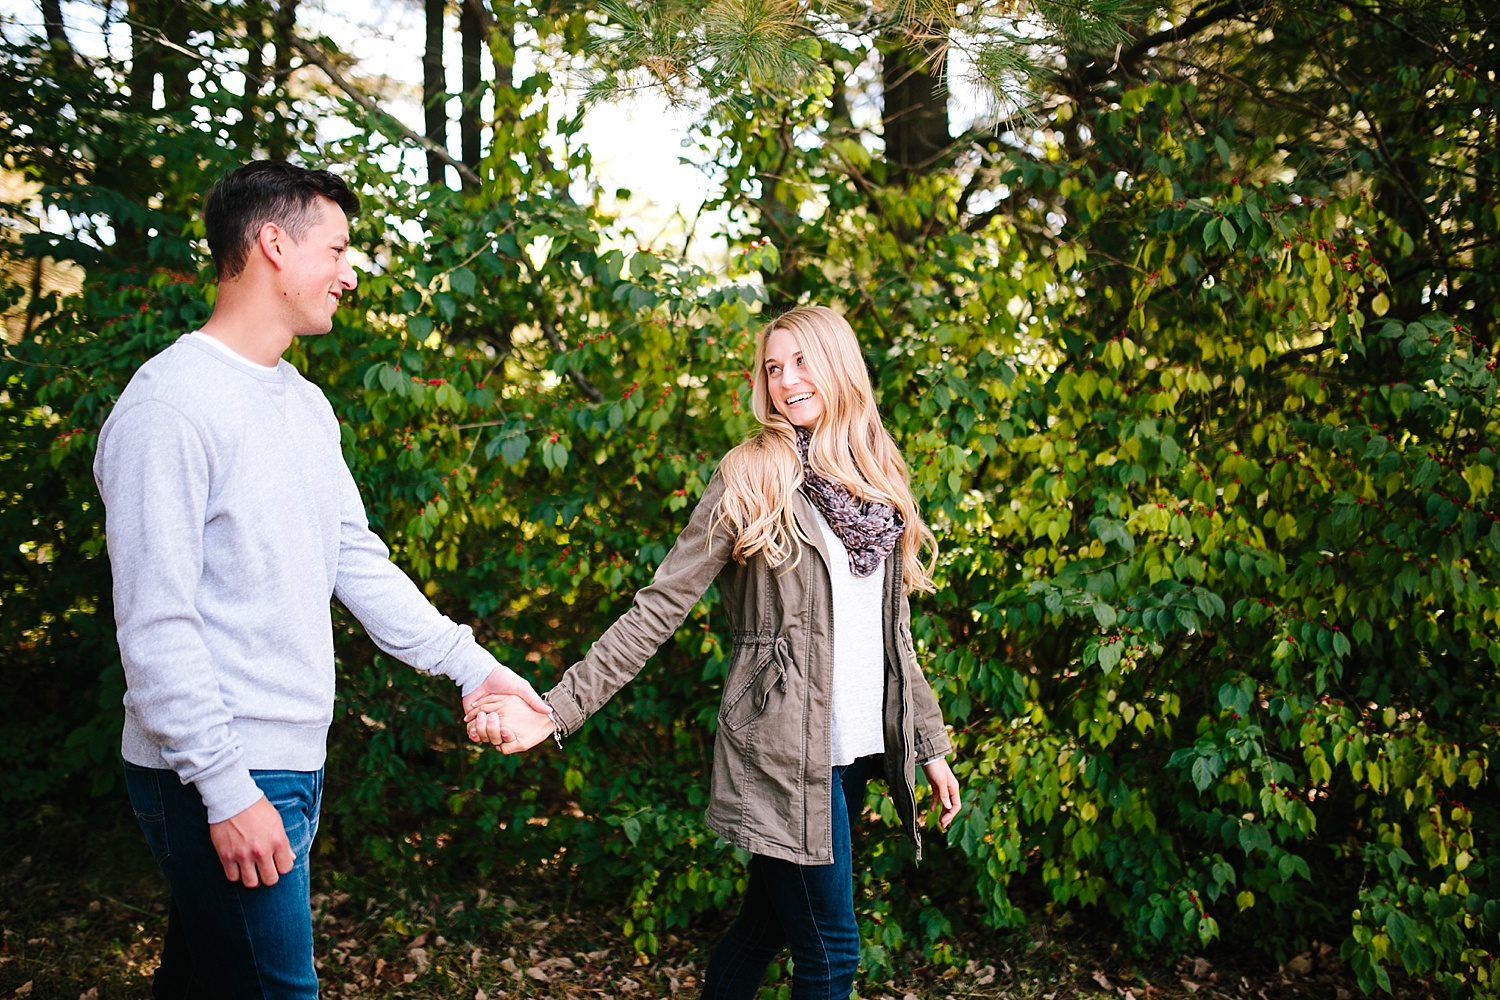 jessanddavid_peacevalleypark_doylestown_engagament_image_112.jpg